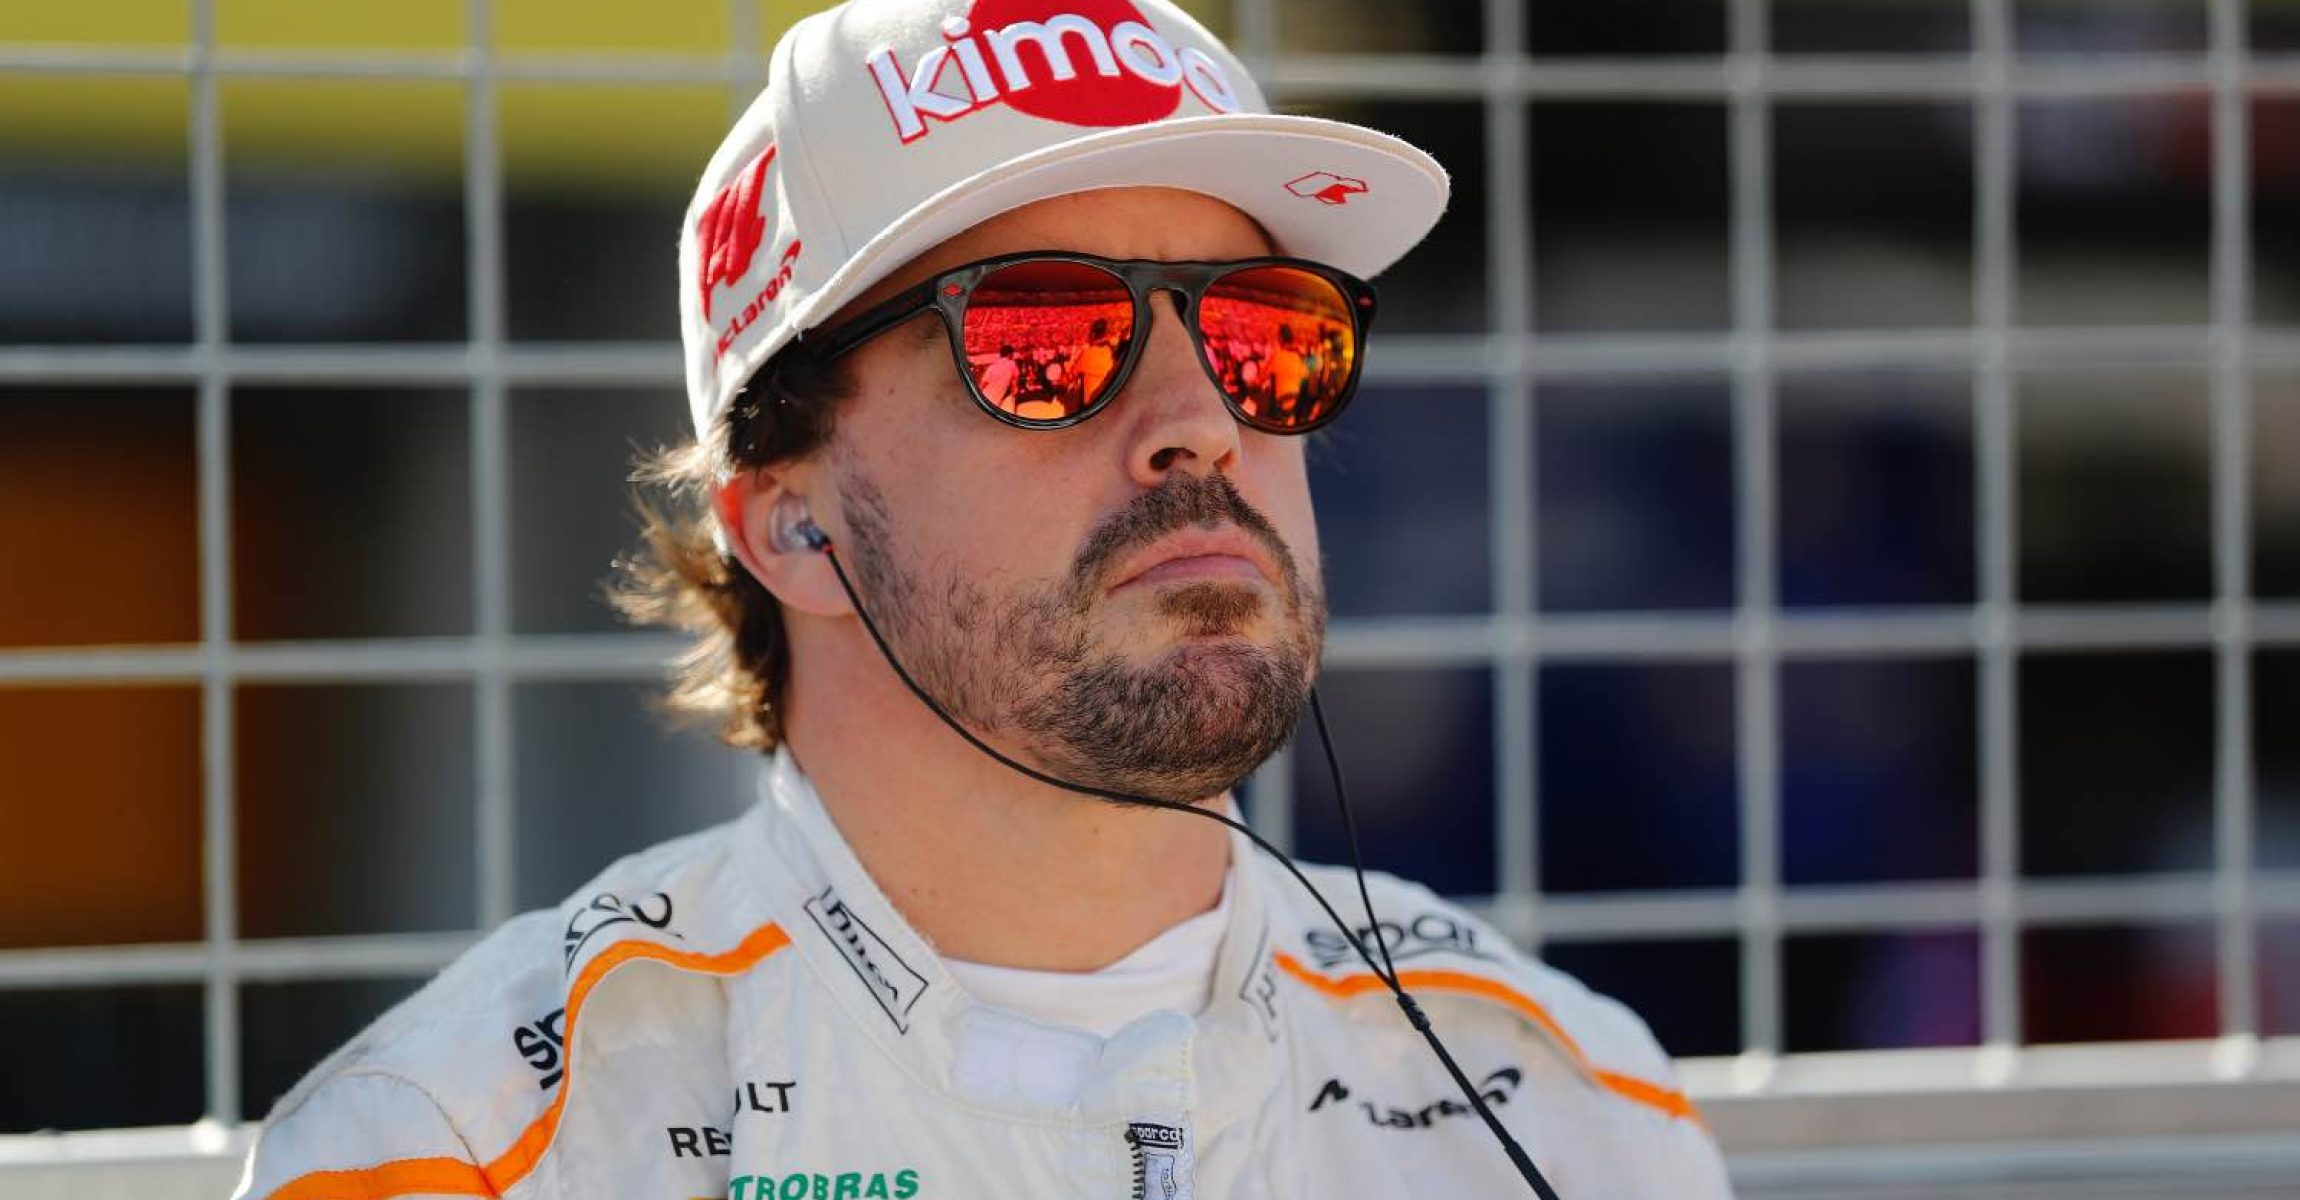 Suzuka Circuit, Suzuka, Japan Sunday 7 October 2018. Fernando Alonso, McLaren, on the grid. Photo: Steven Tee/McLaren ref: Digital Image _1ST6211